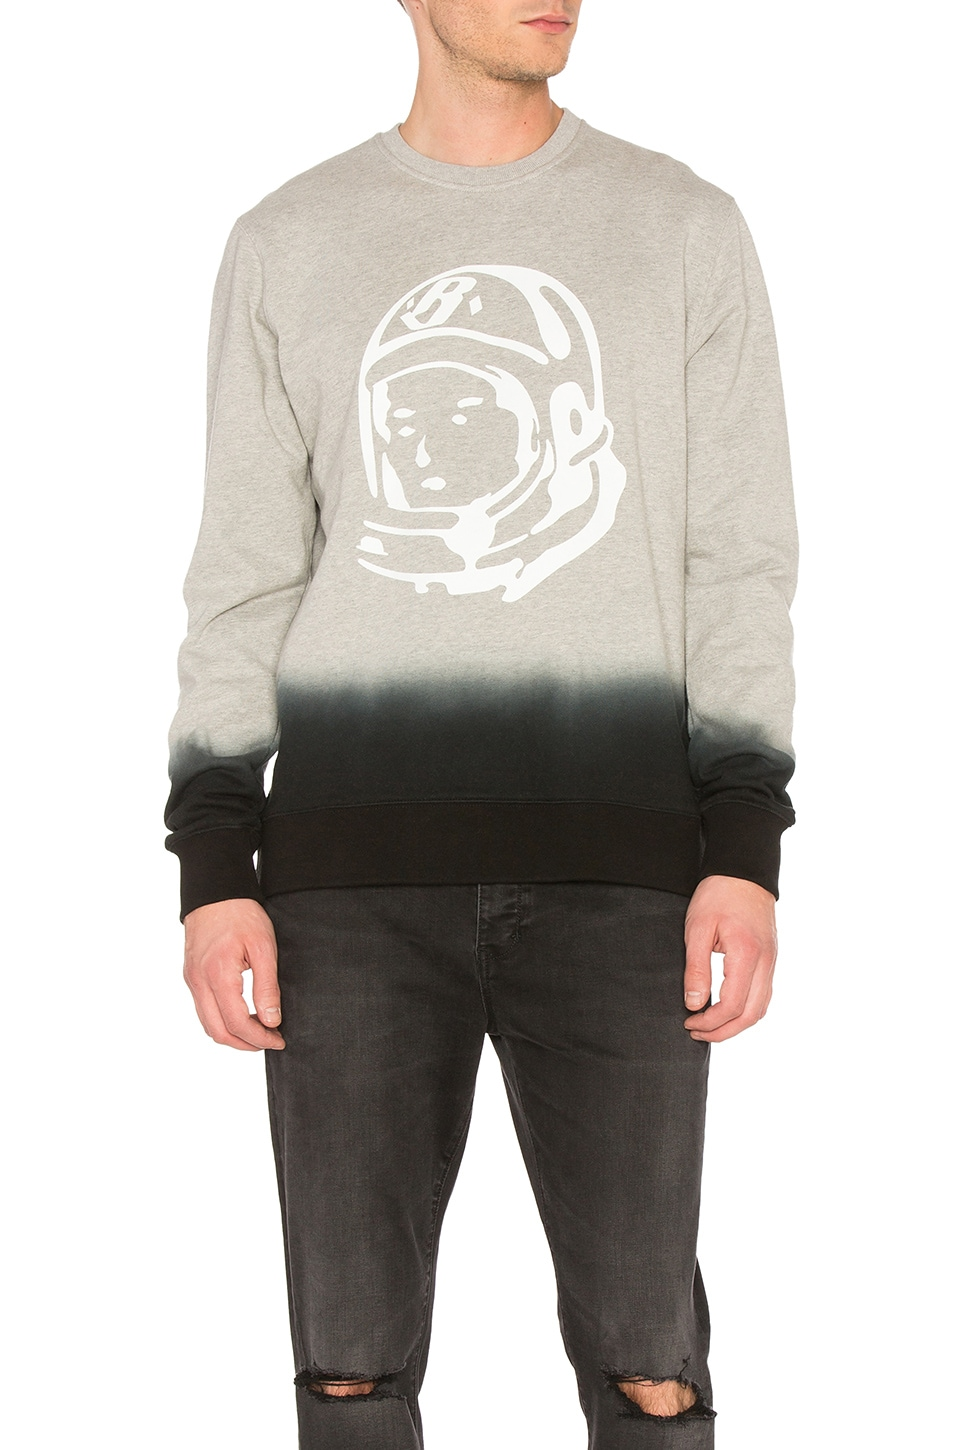 Two Tone Crew by Billionaire Boys Club